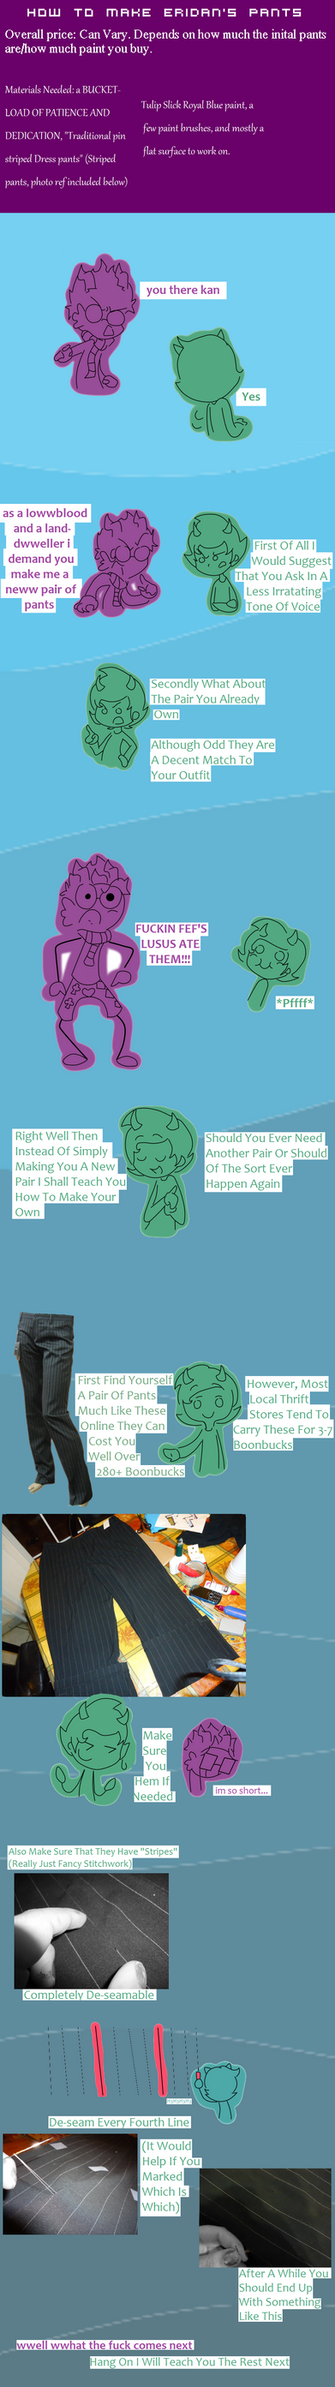 How to: Eridans' pants tutorial and tips pt1 by Toxicated-kisame52